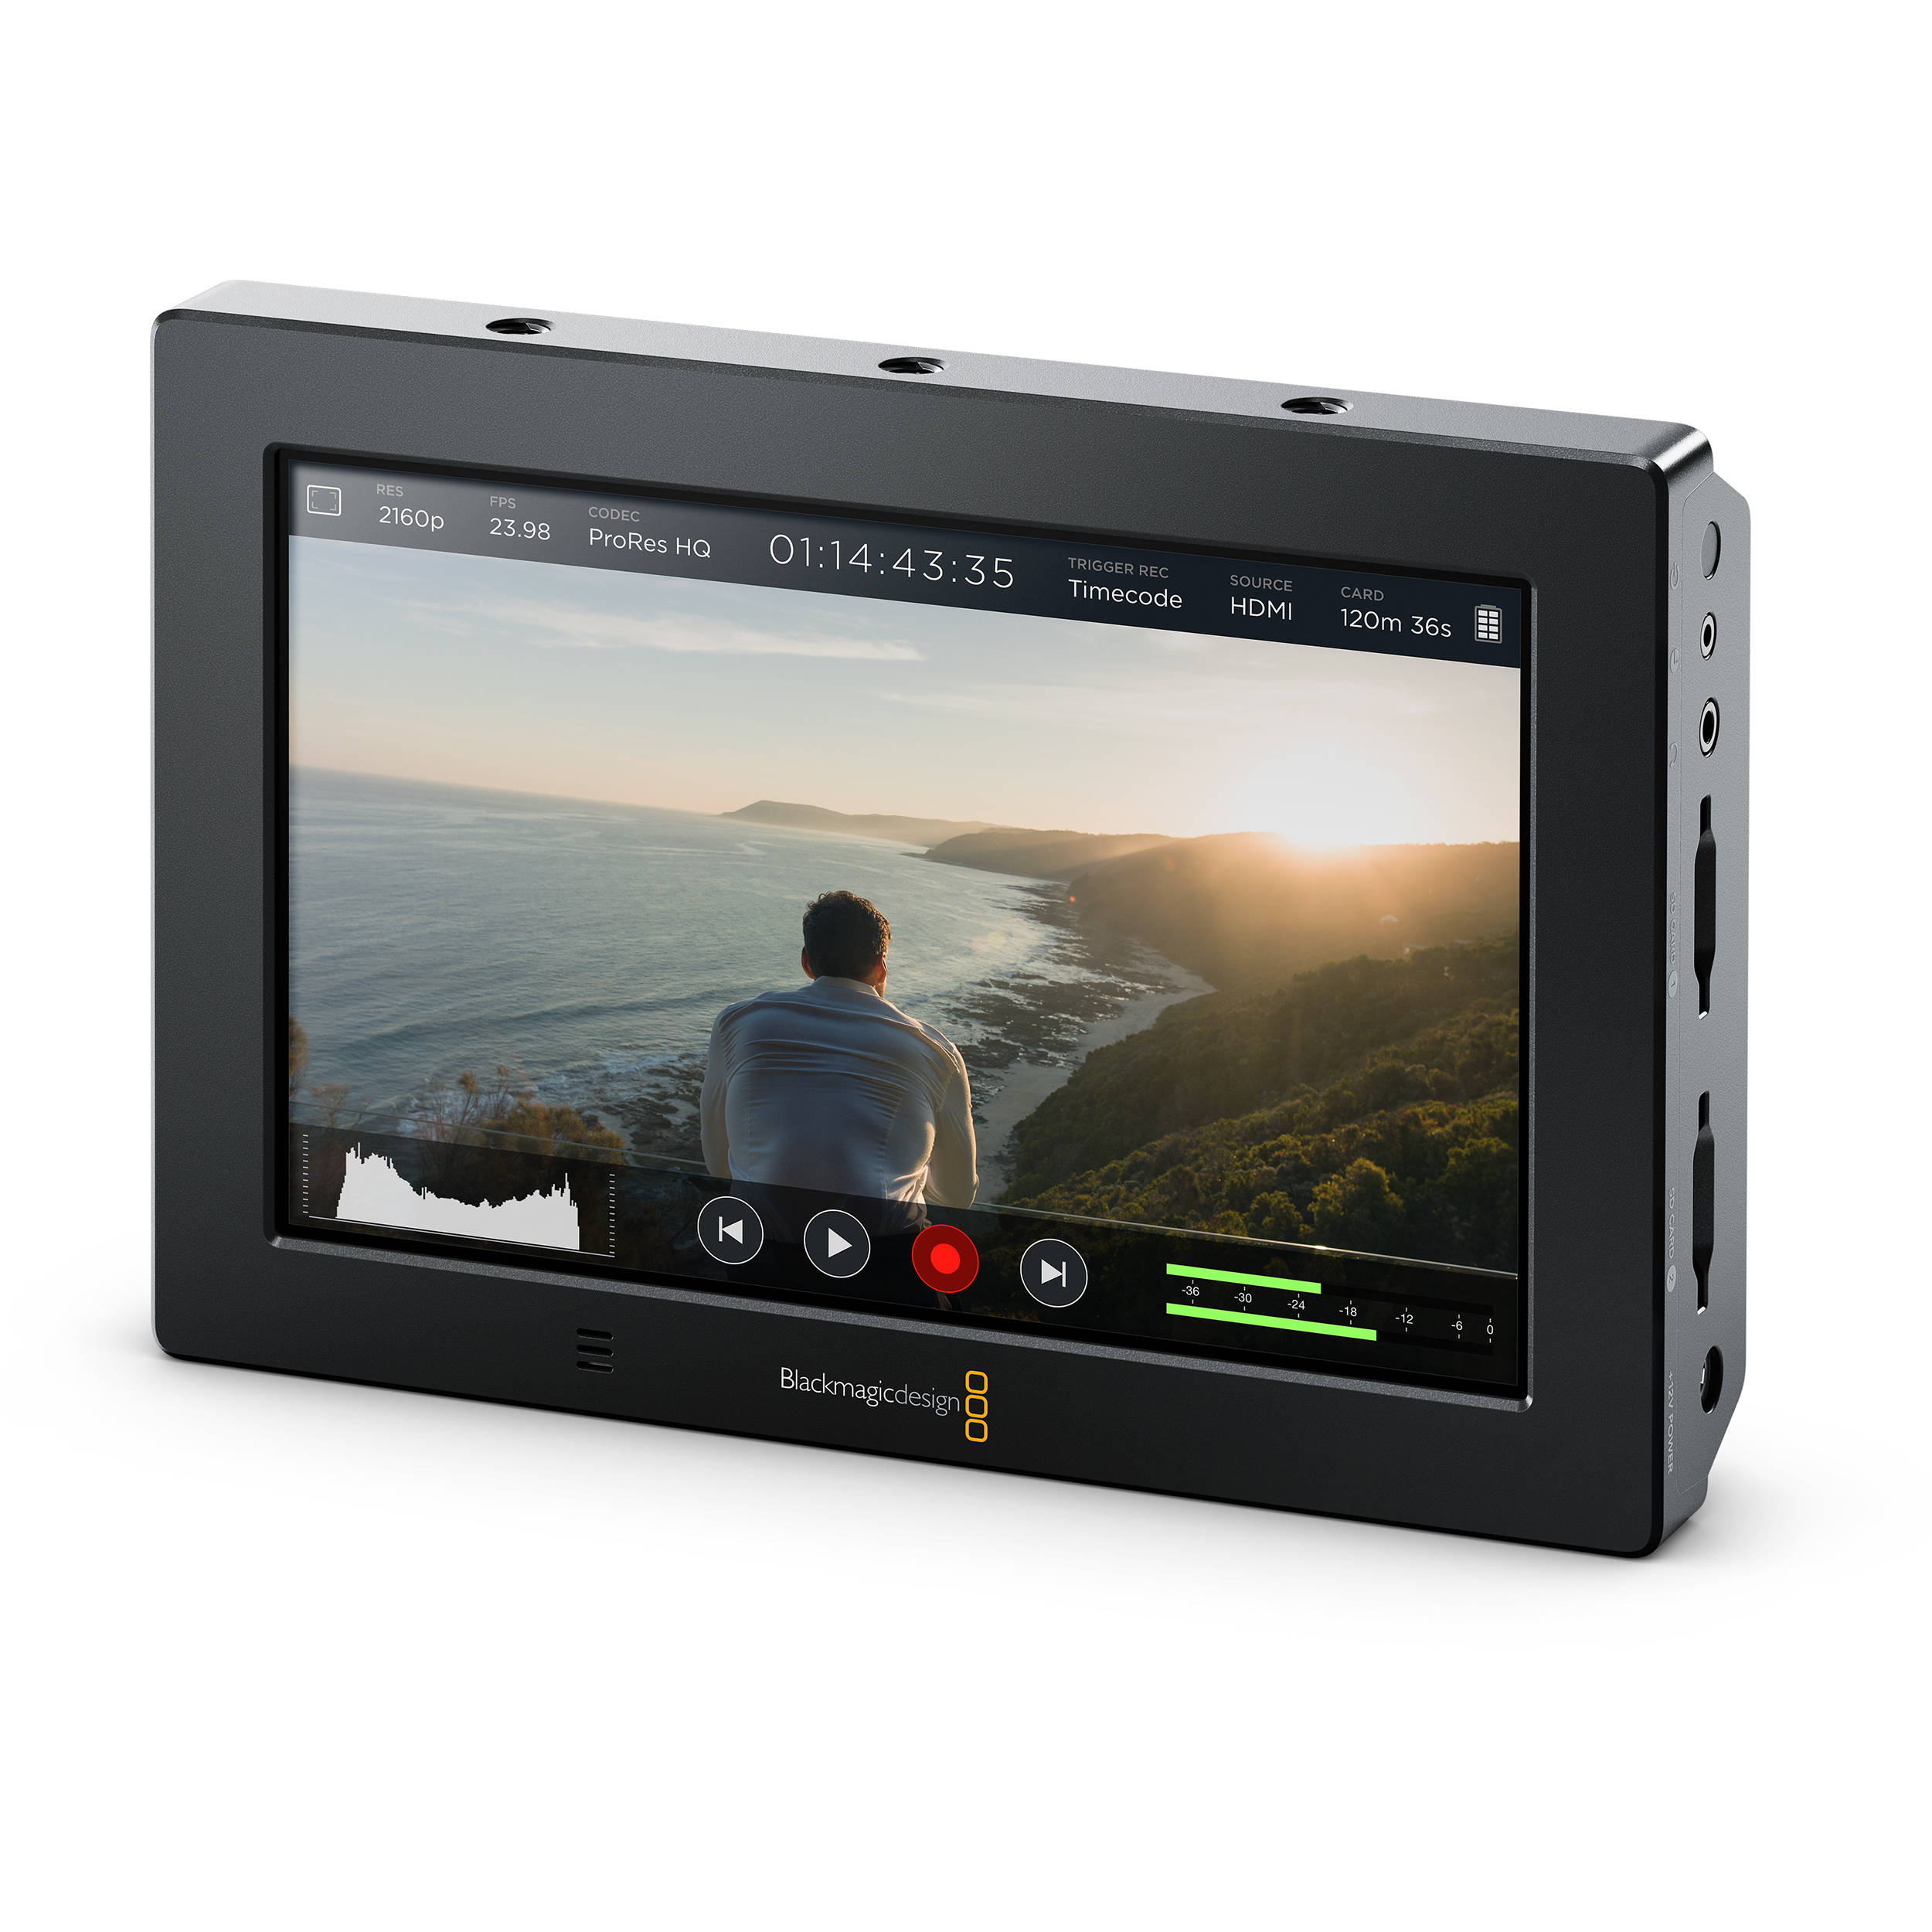 blackmagic video assist  Blackmagic Design Video Assist 4K 7